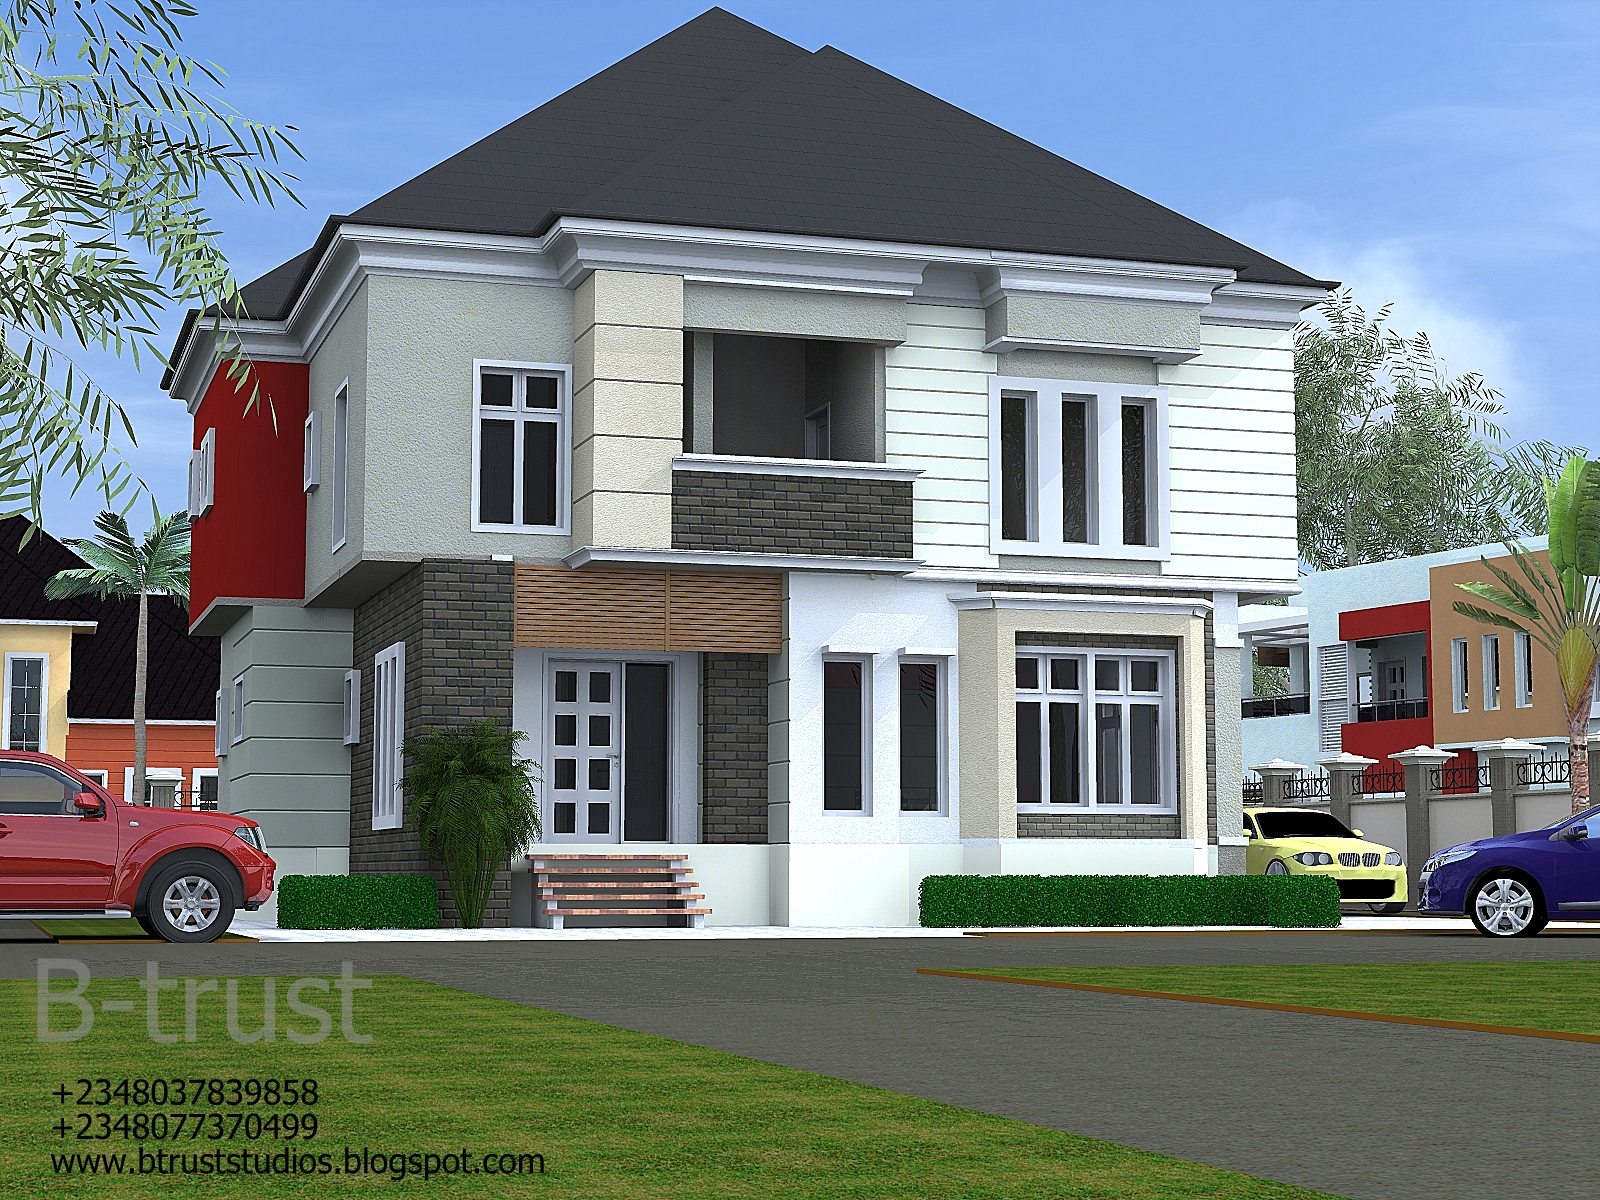 Architectural designs by b trust studios 5 bedroom duplex for 5 bedroom duplex